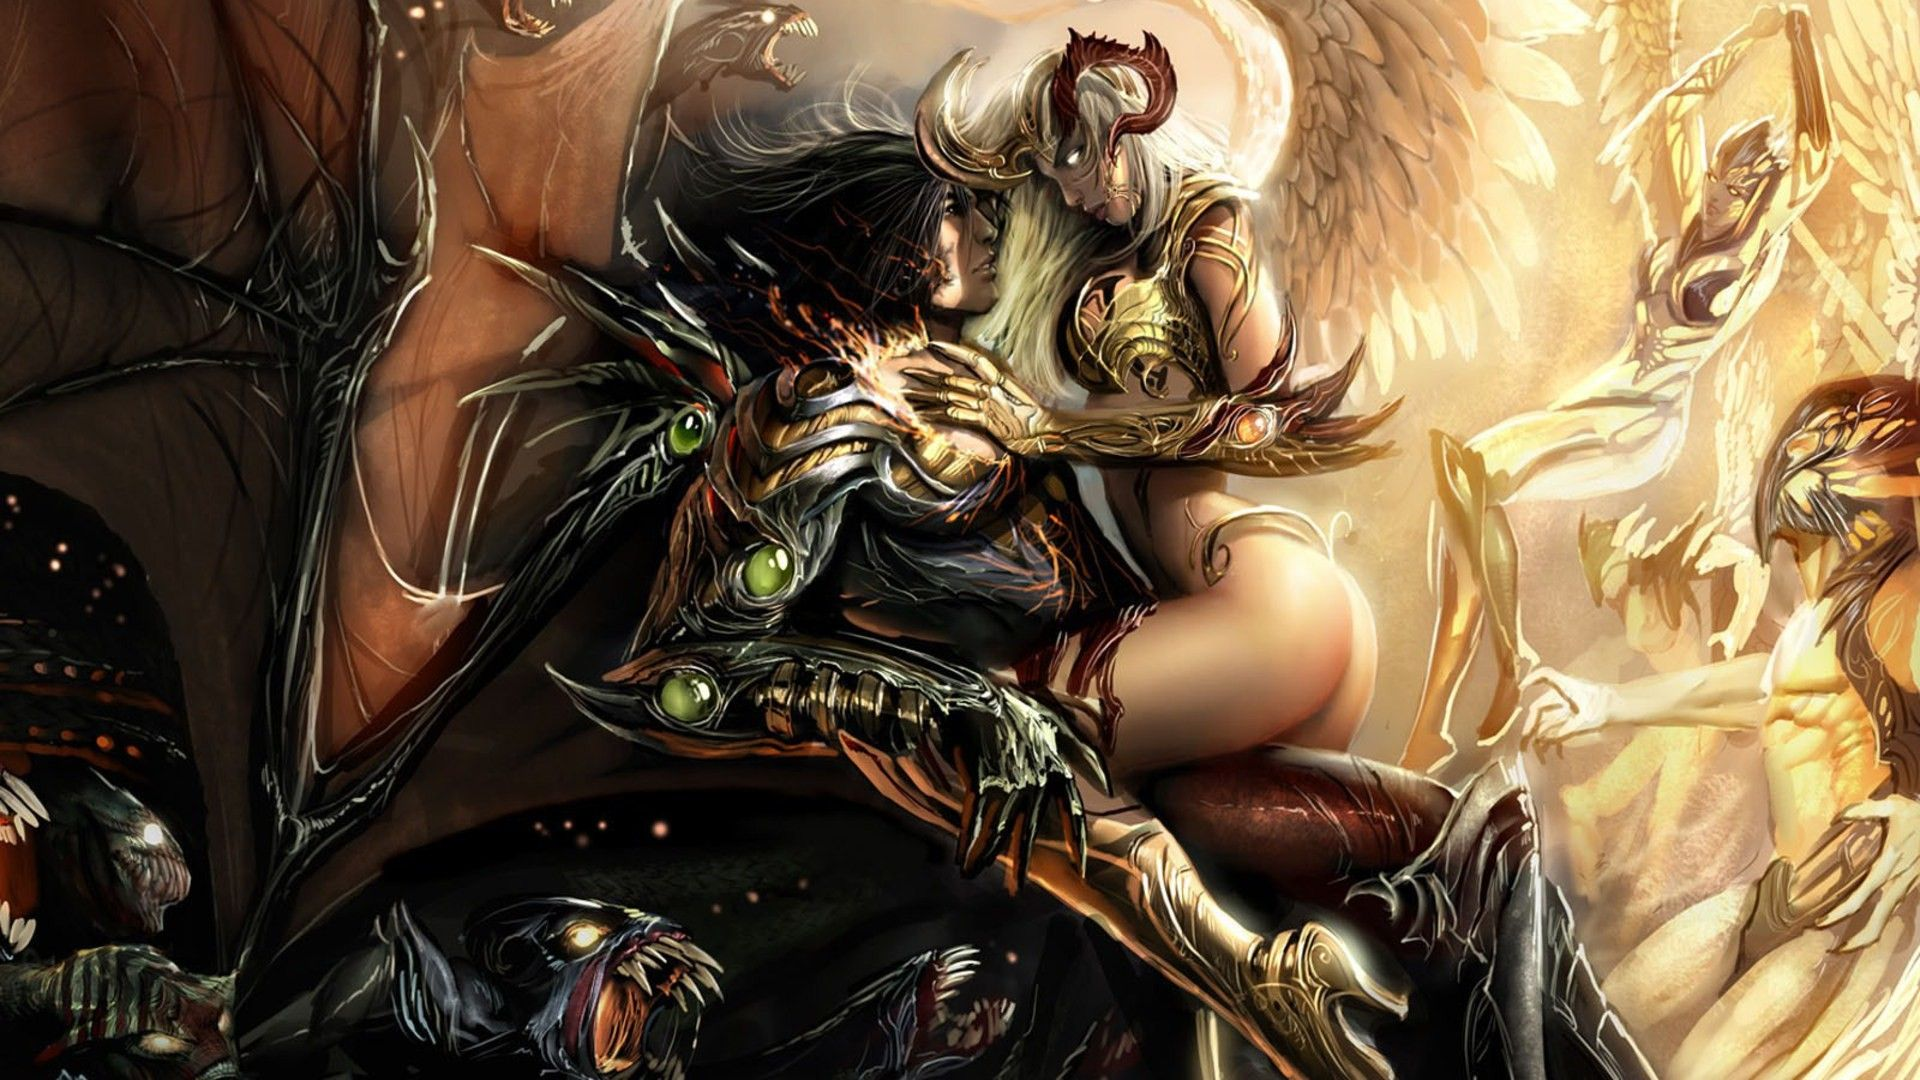 Images Of Fantasy Angels And Demons